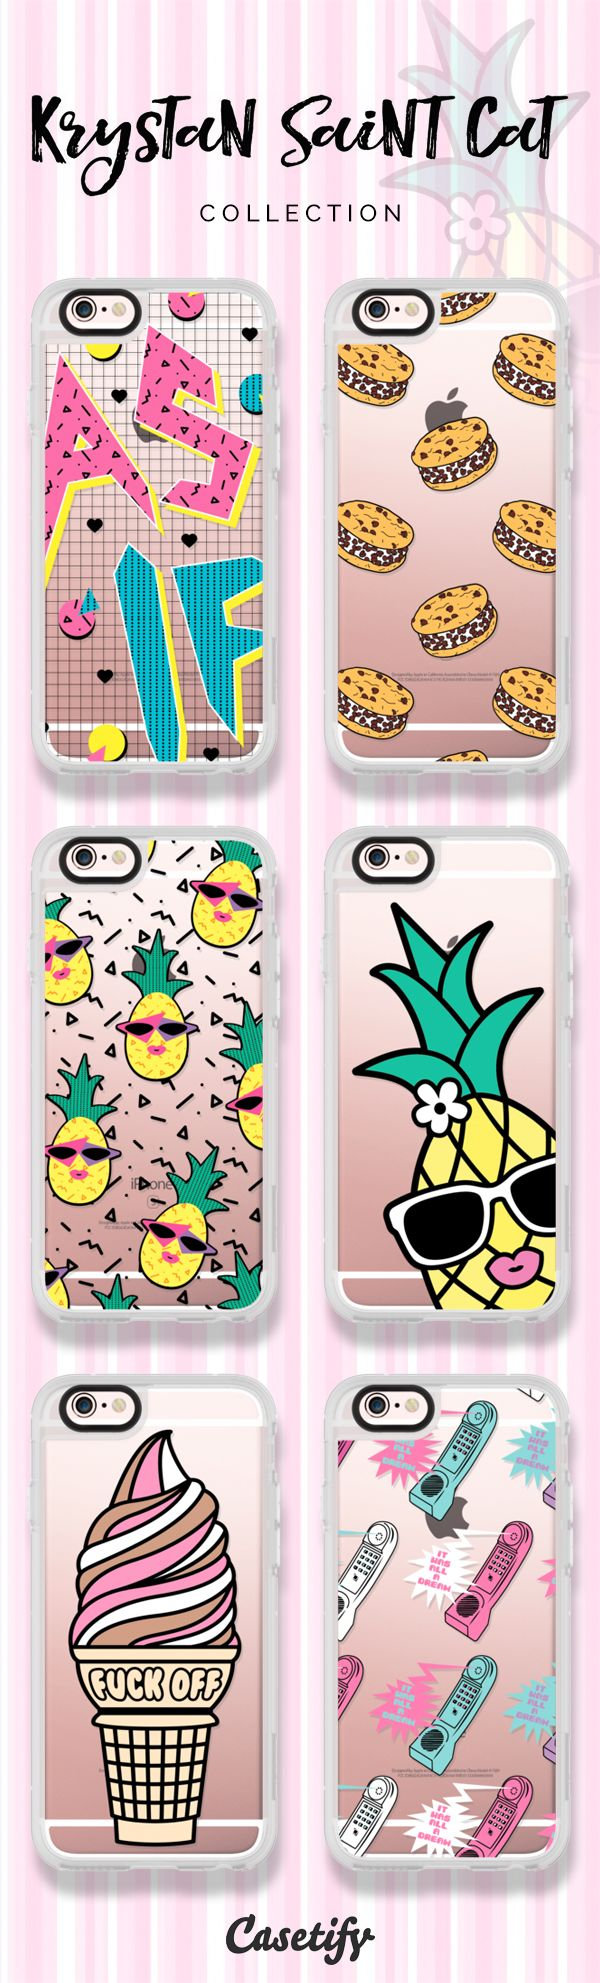 6 must have iPhone 6 protective phone case designs by Krystan Saint Cat | Click through to see more cute food iphone case ideas >>> https://www.casetify.com/krystansaintcat/collection #phonecase | @casetify